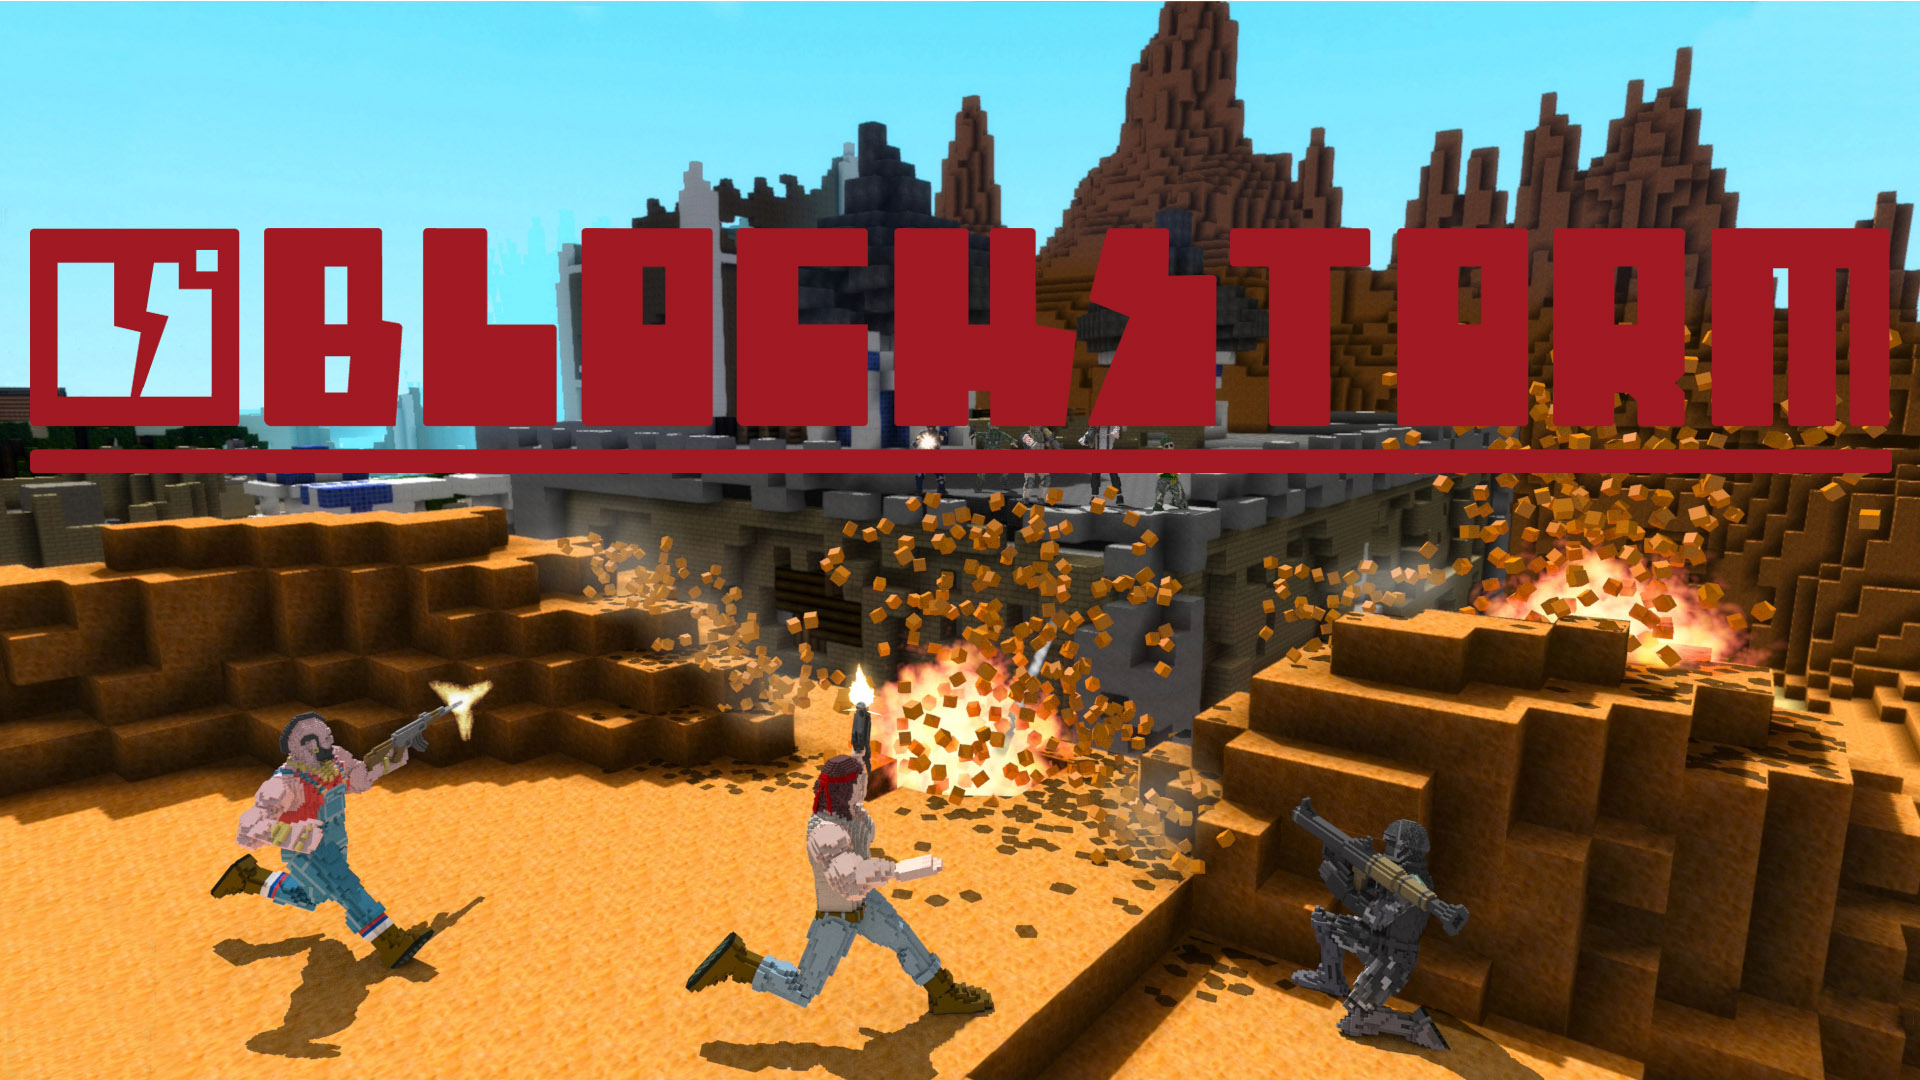 10 BlockStorm Steam Key Giveaway